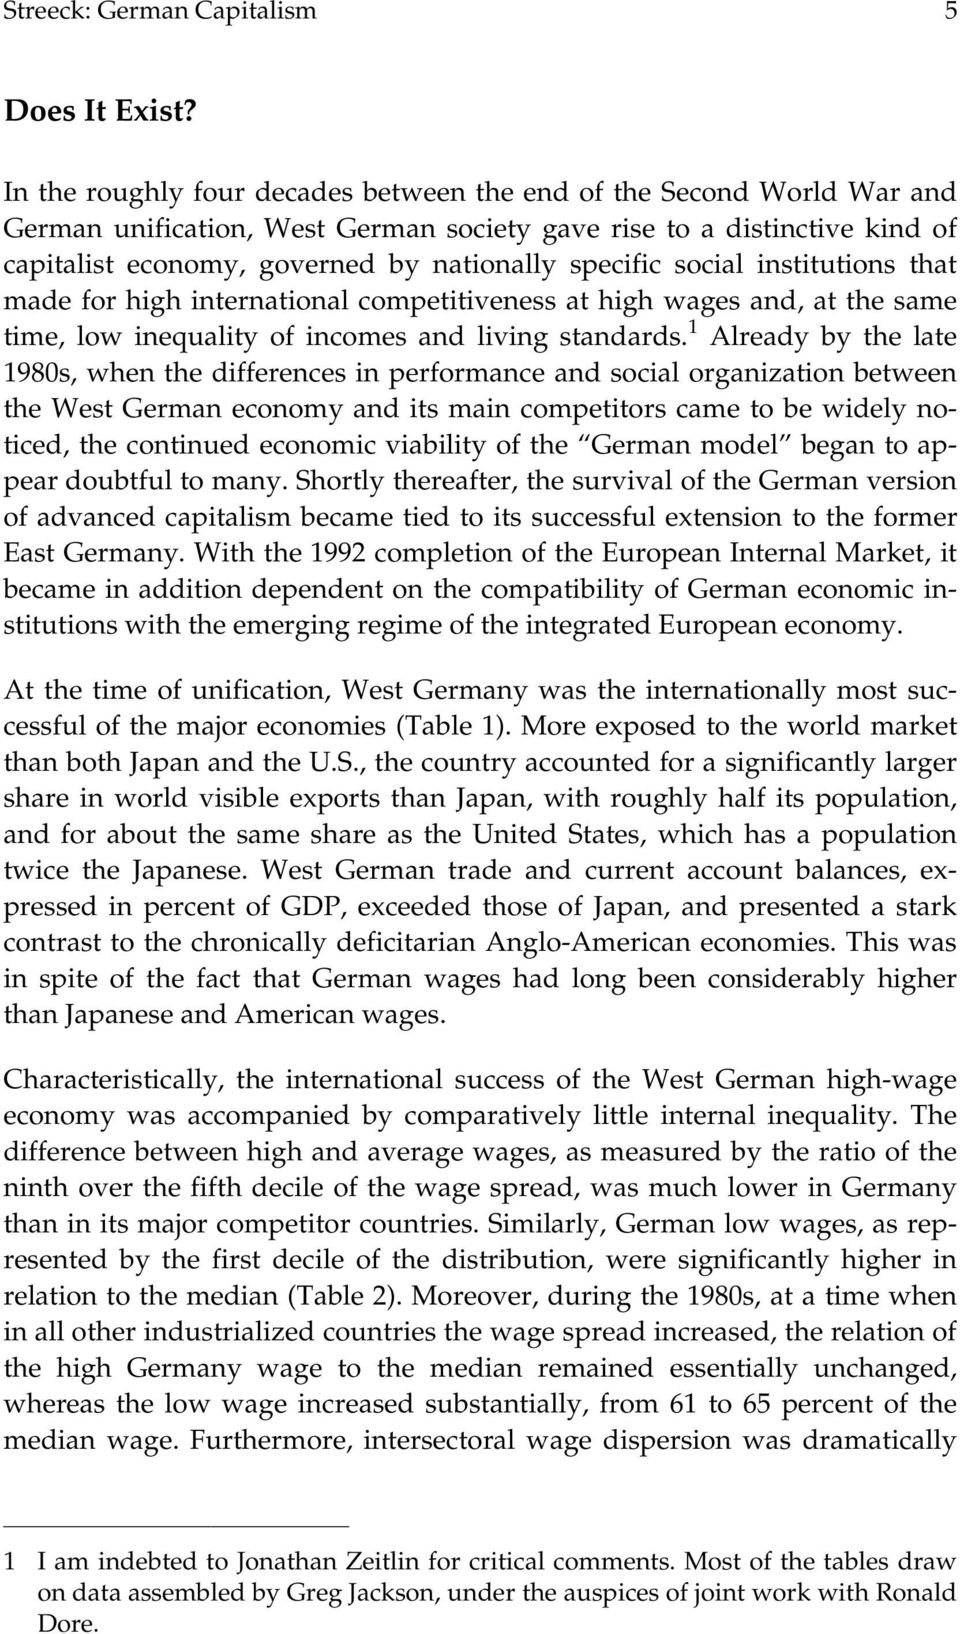 social institutions that made for high international competitiveness at high wages and, at the same time, low inequality of incomes and living standards.